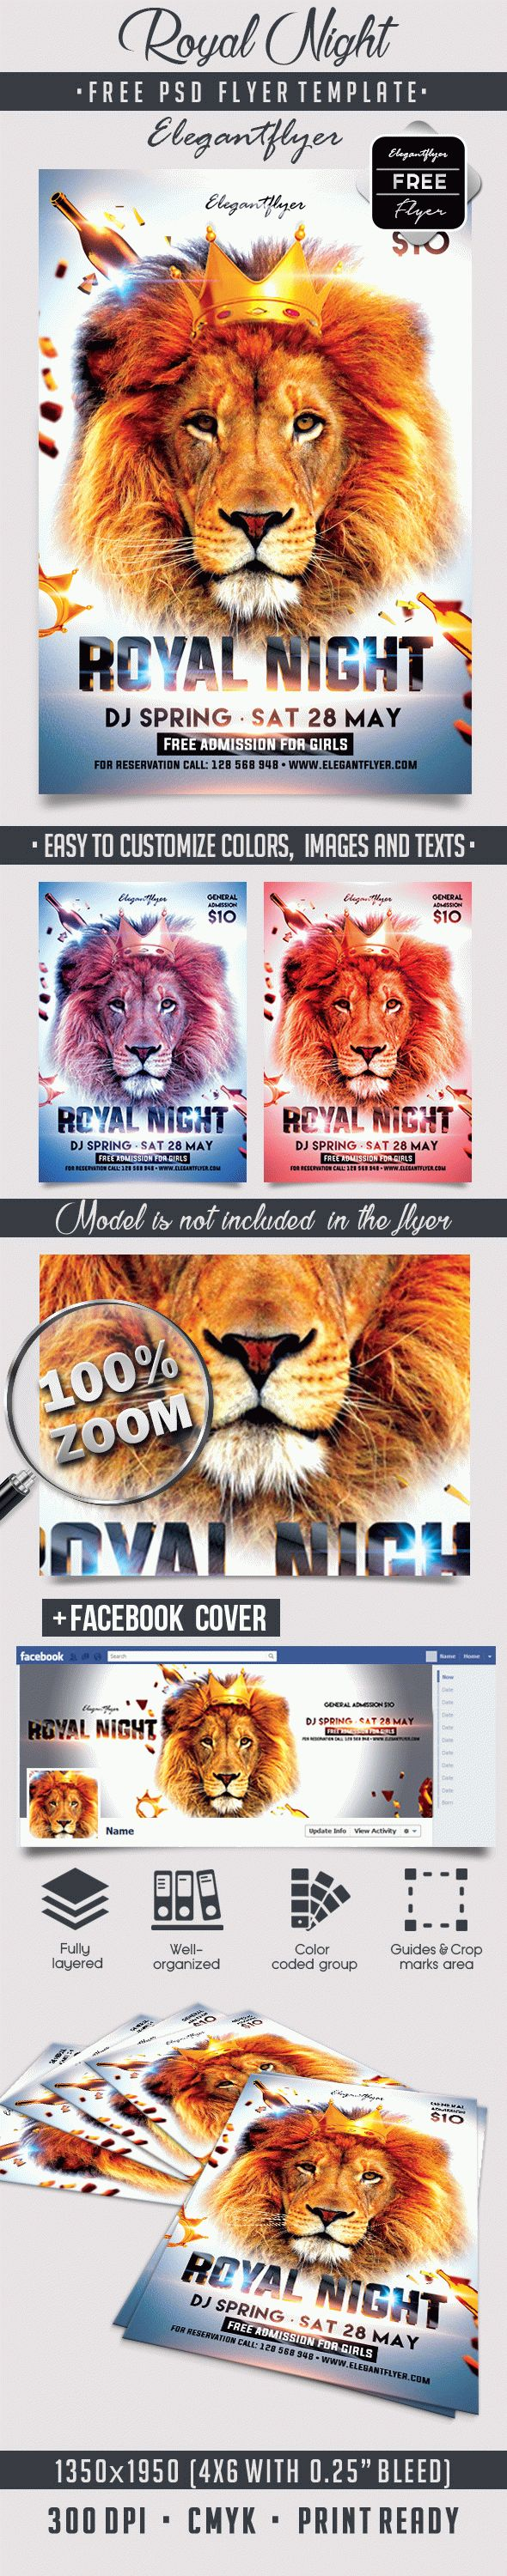 Royal Night – Free Flyer PSD Template + Facebook Cover